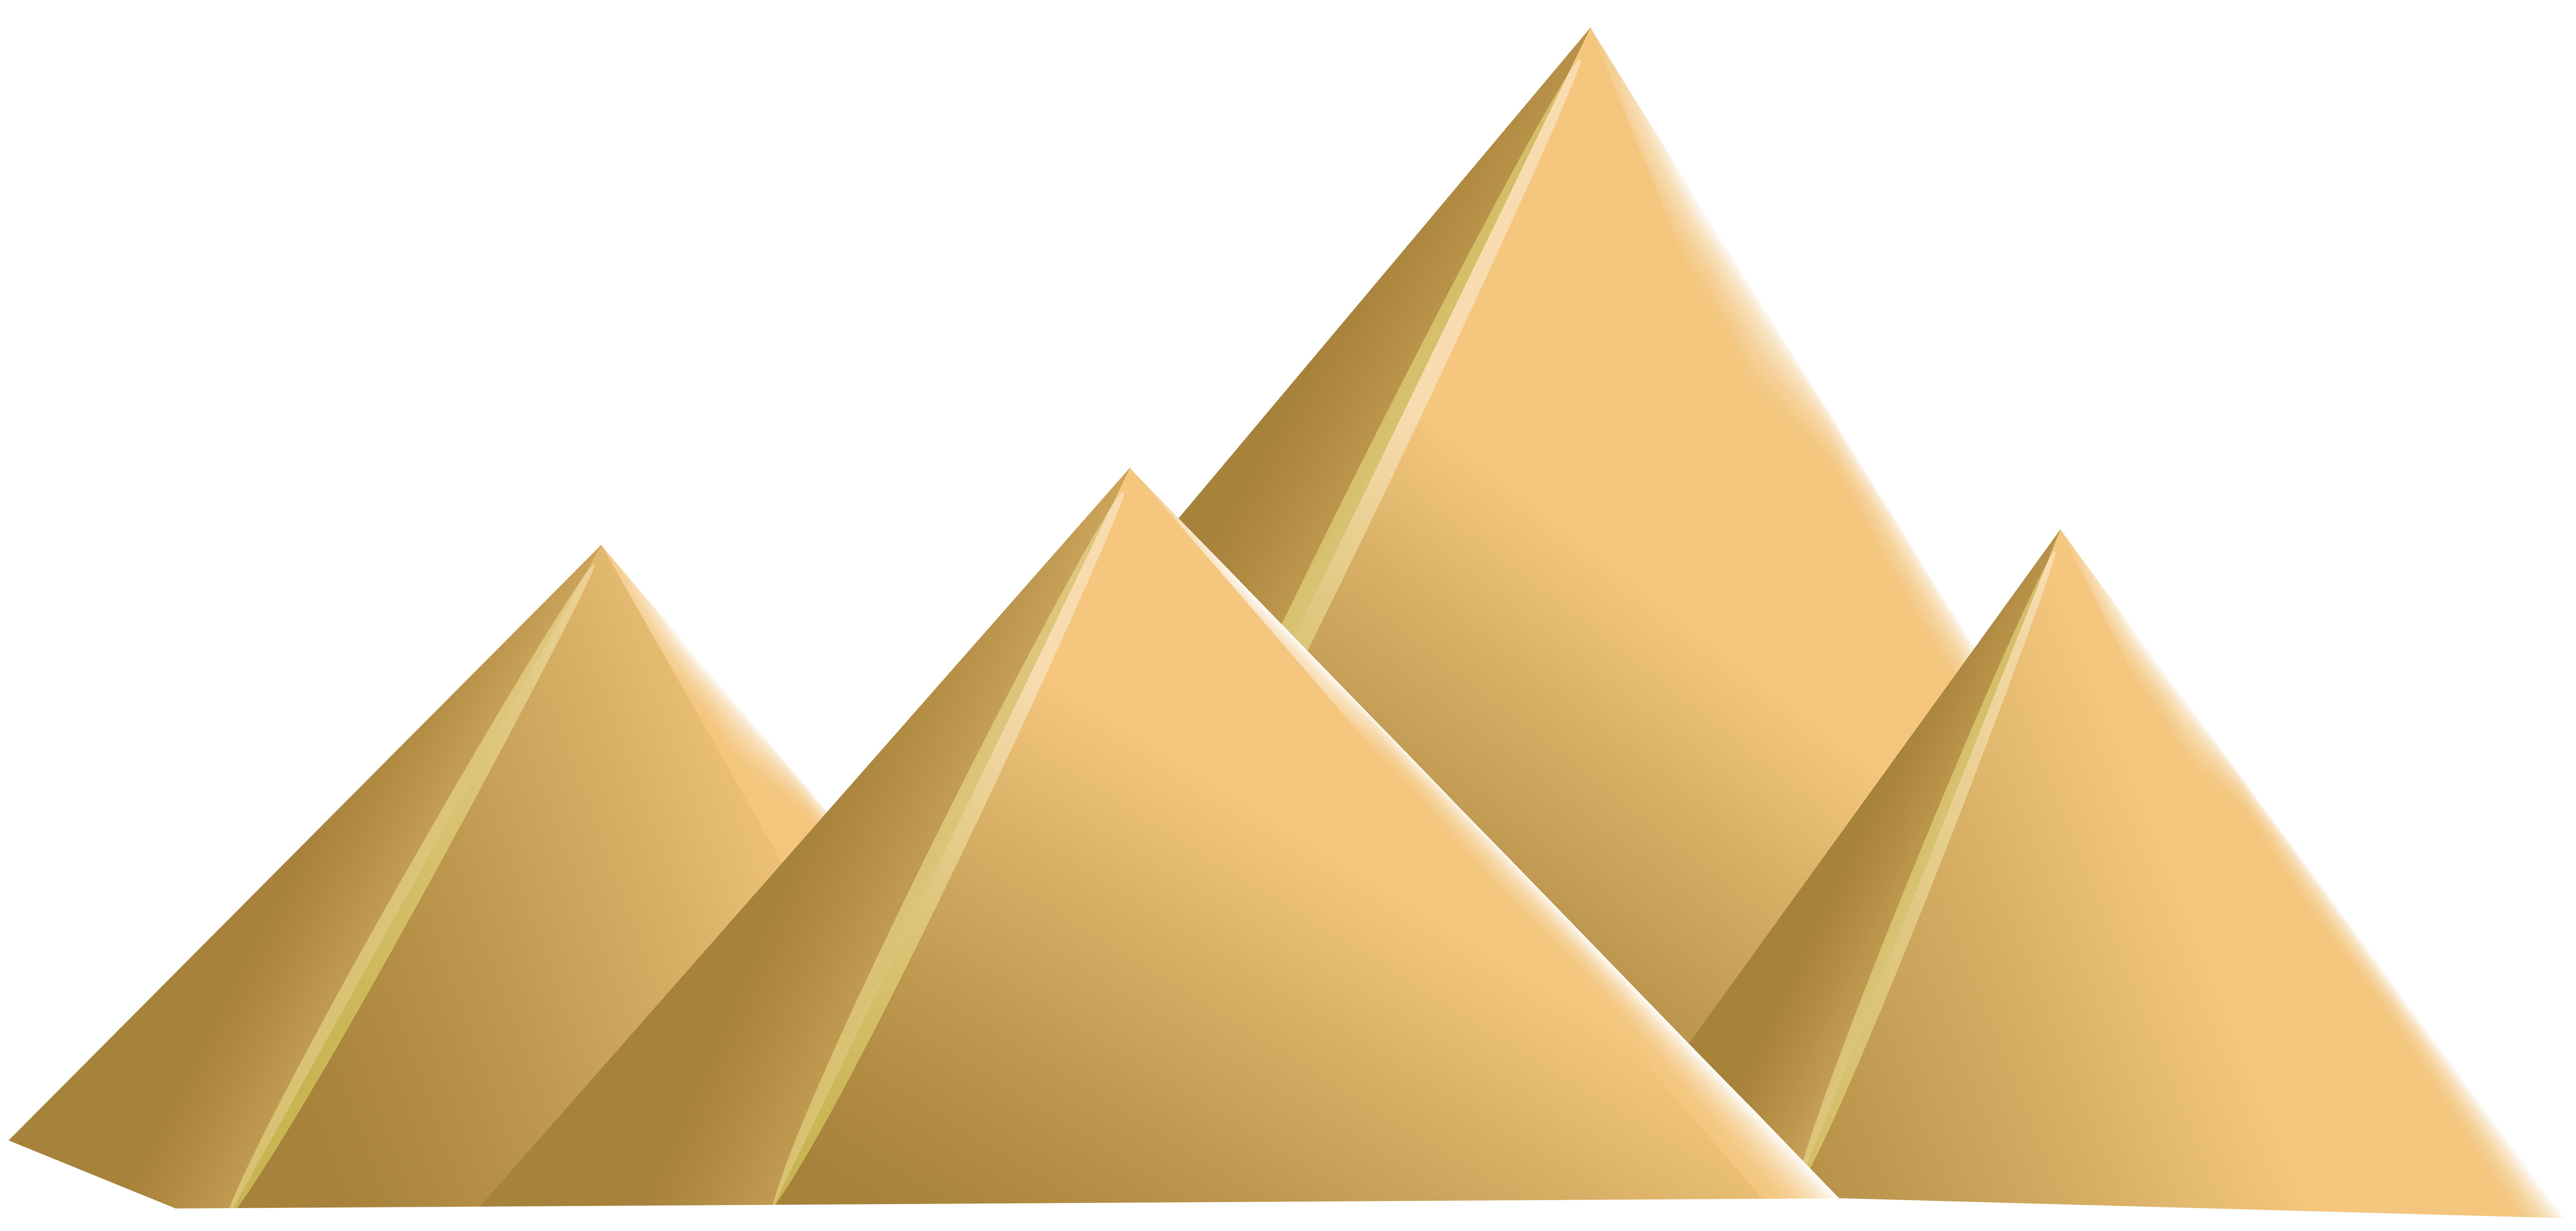 Egyptian png clip art. Pyramids clipart